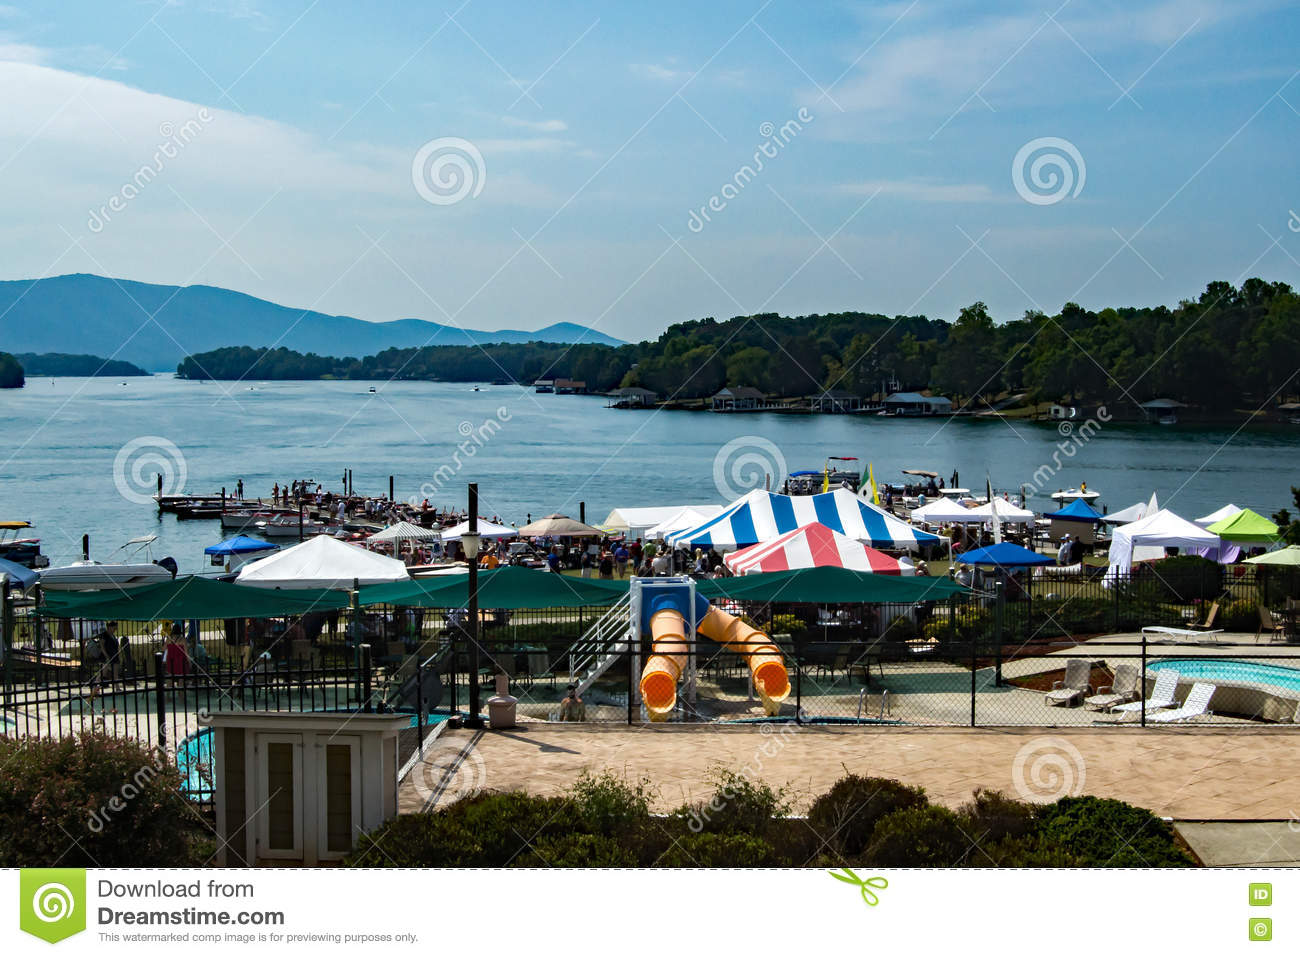 Smith Mountain Lake Antique Classic Boat and Festival 2016